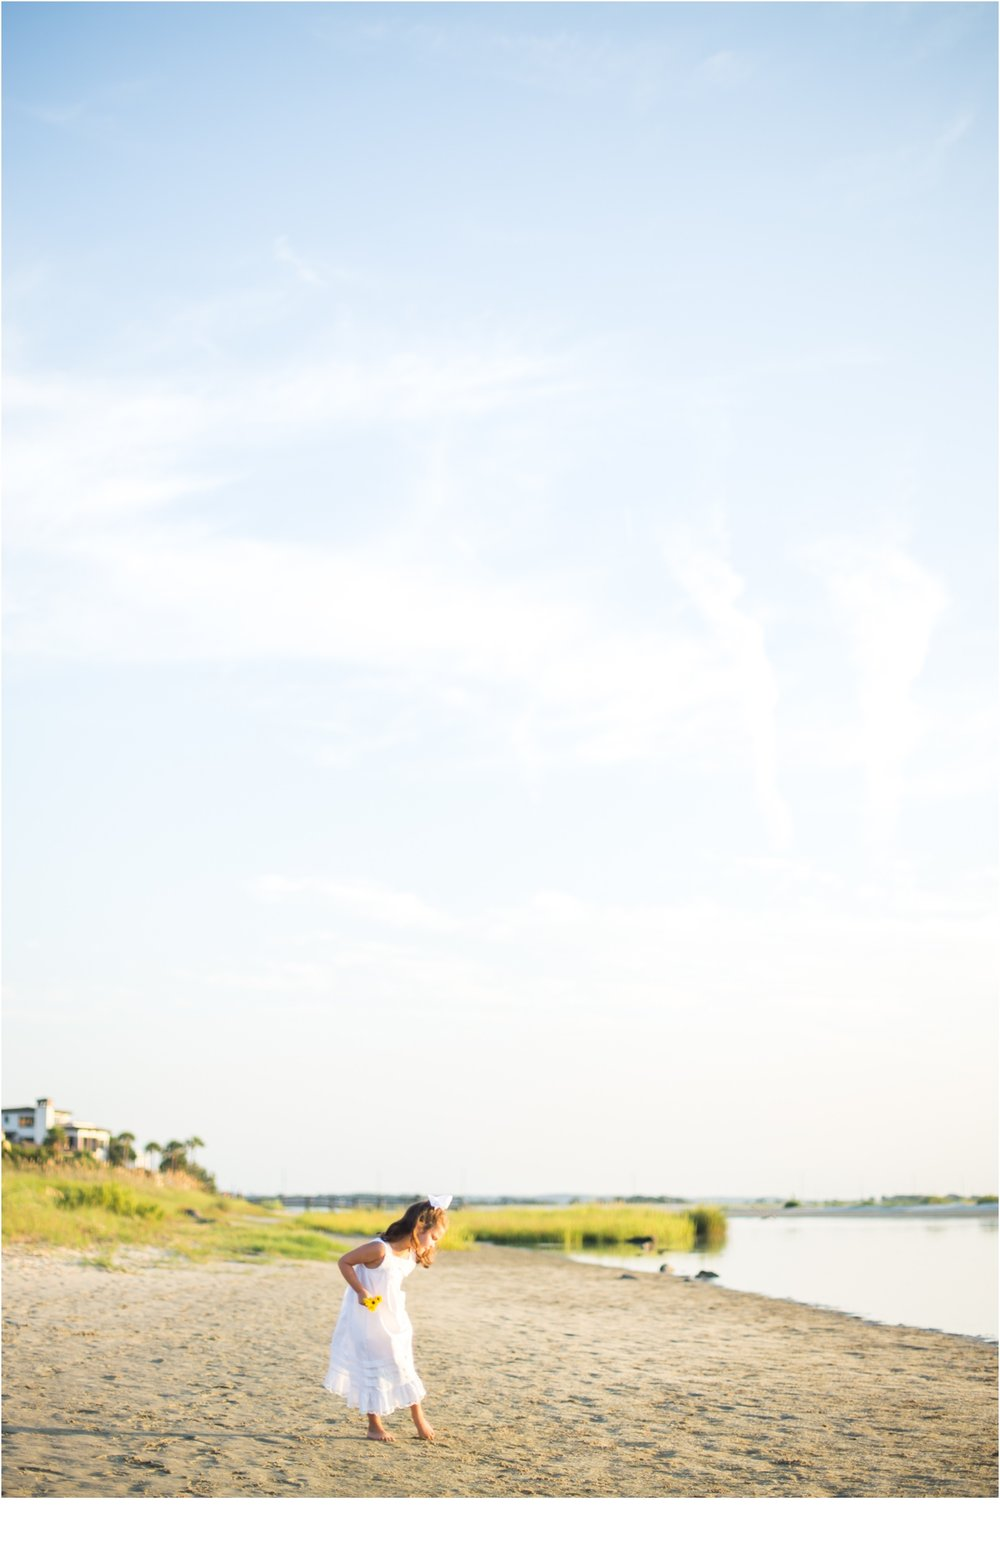 Rainey_Gregg_Photography_St._Simons_Island_Georgia_California_Wedding_Portrait_Photography_0177.jpg